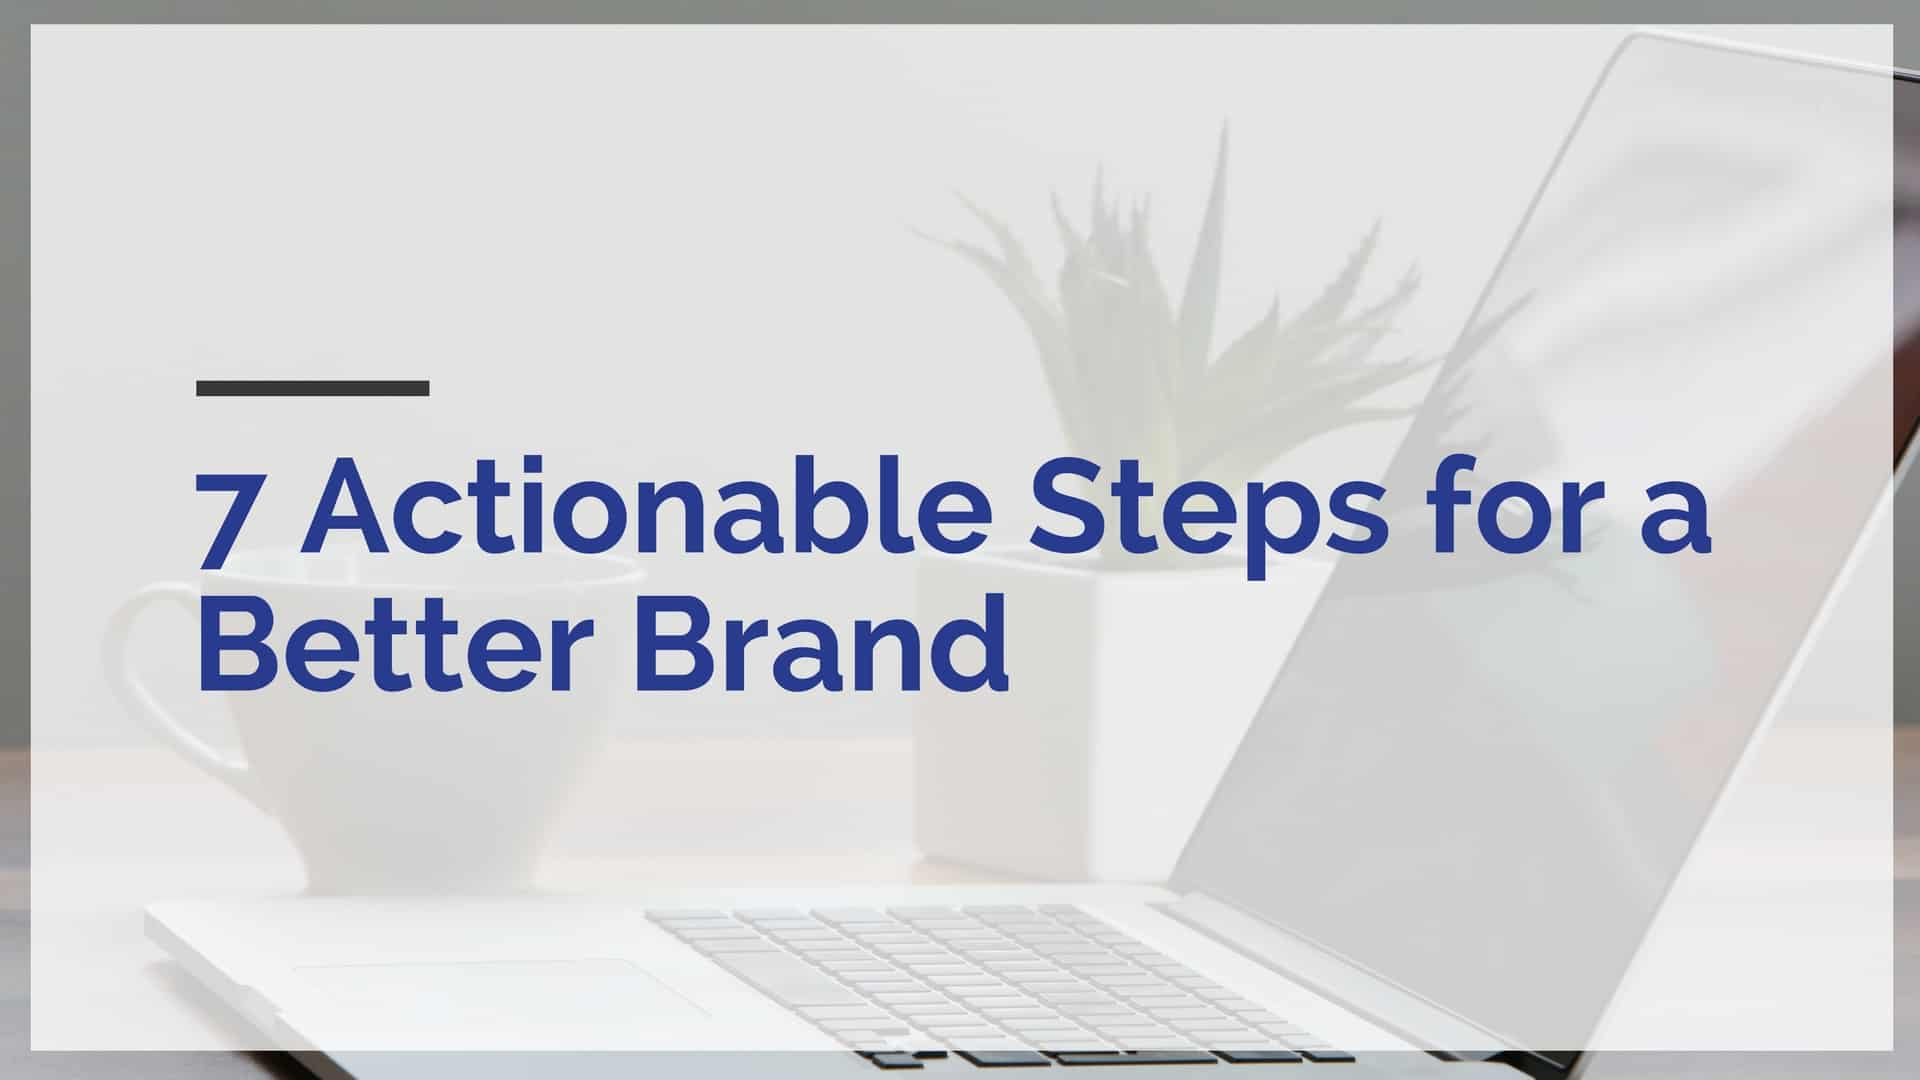 7 actionable steps to a better brand